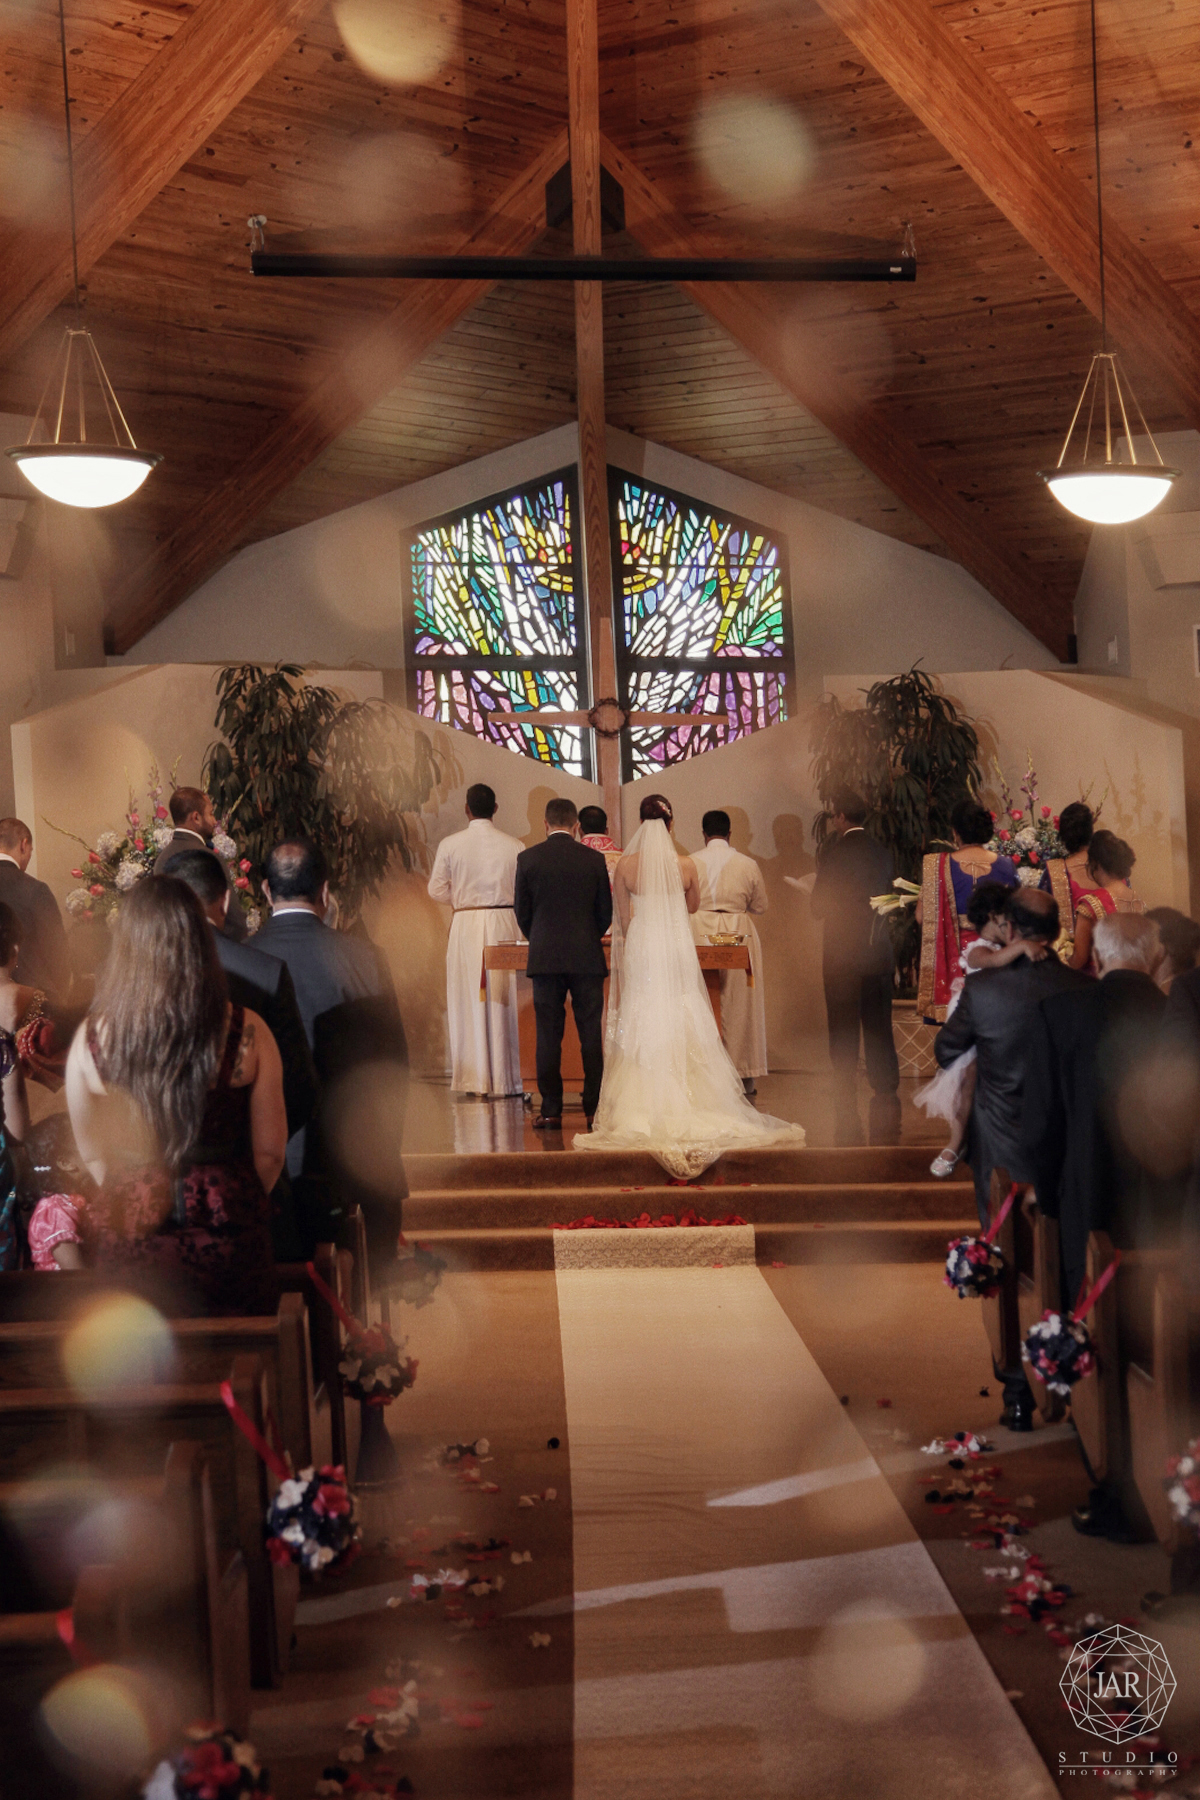 12-catholic-indian-wedding-ceremony-jarstudio-photography-orlando.JPG